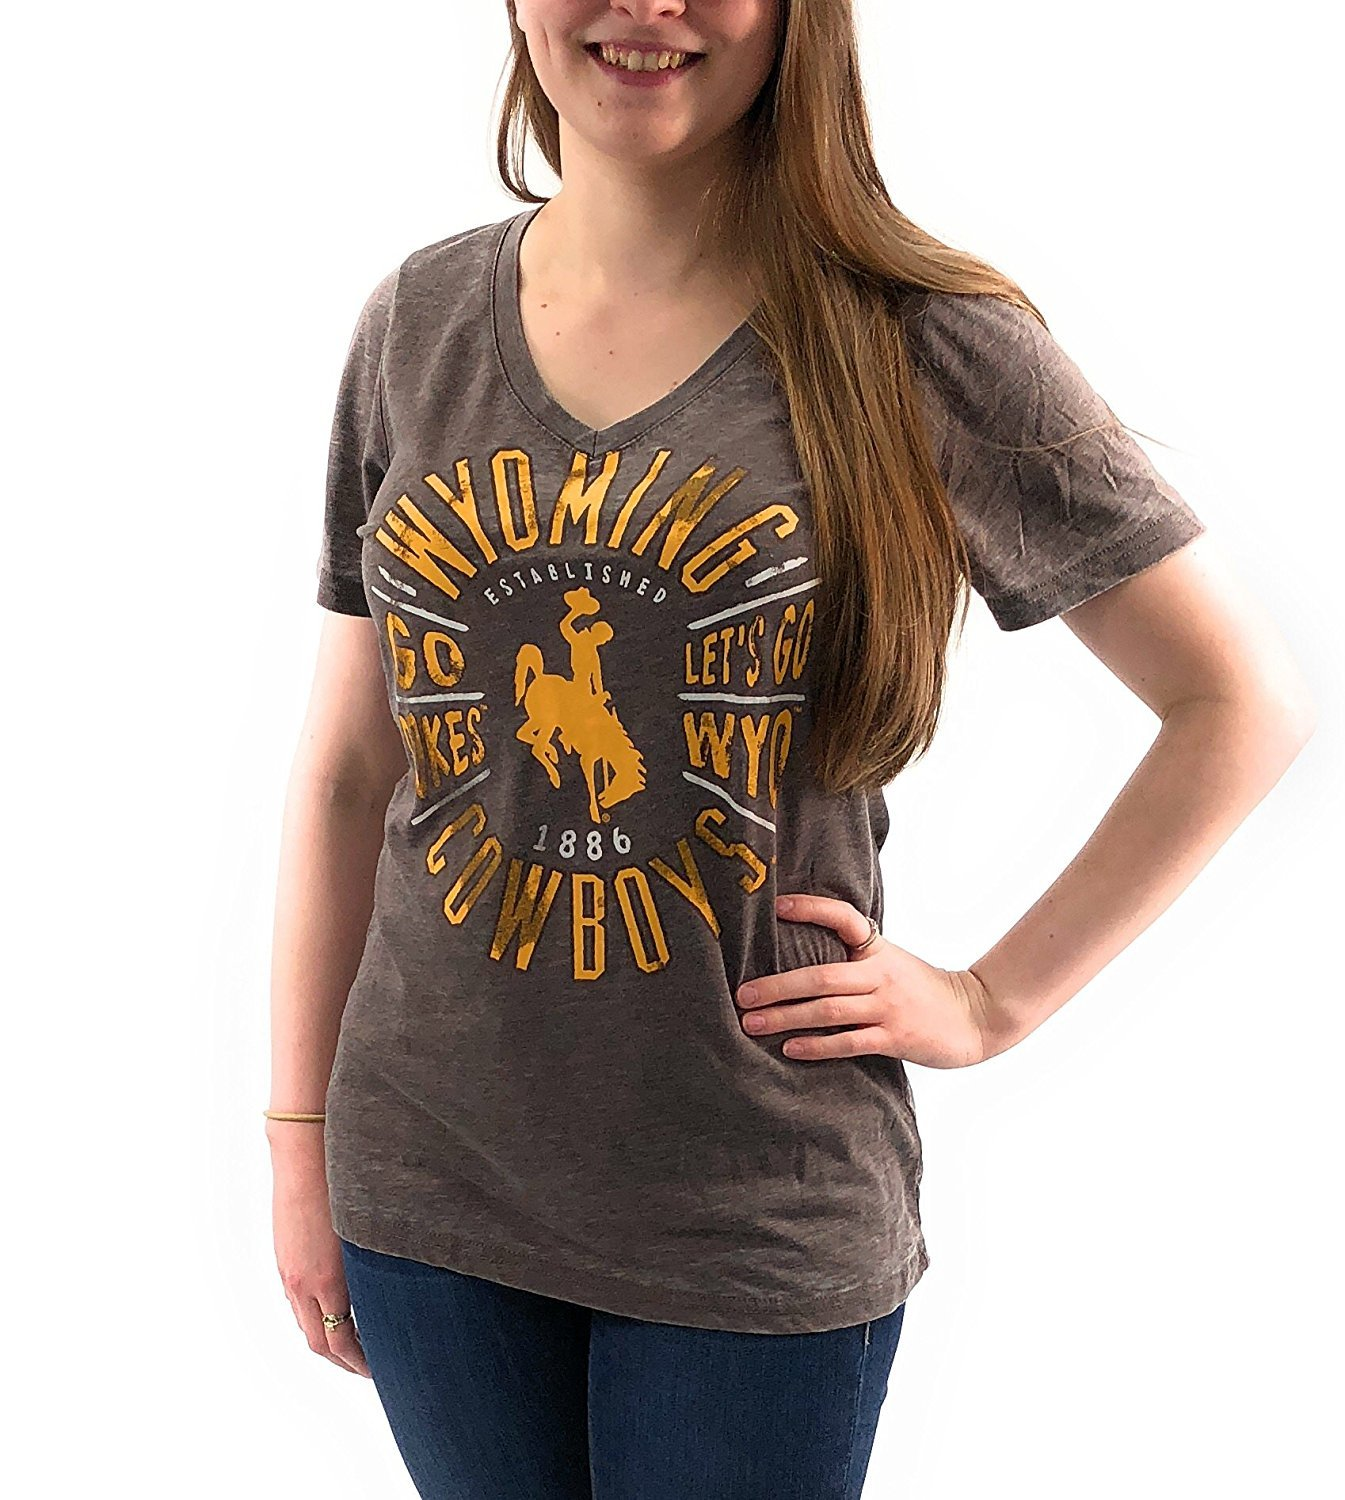 Creative Apparel Women's NCAA Wyoming Cowboys Sporty Text Slot Neck T-Shirt Tee